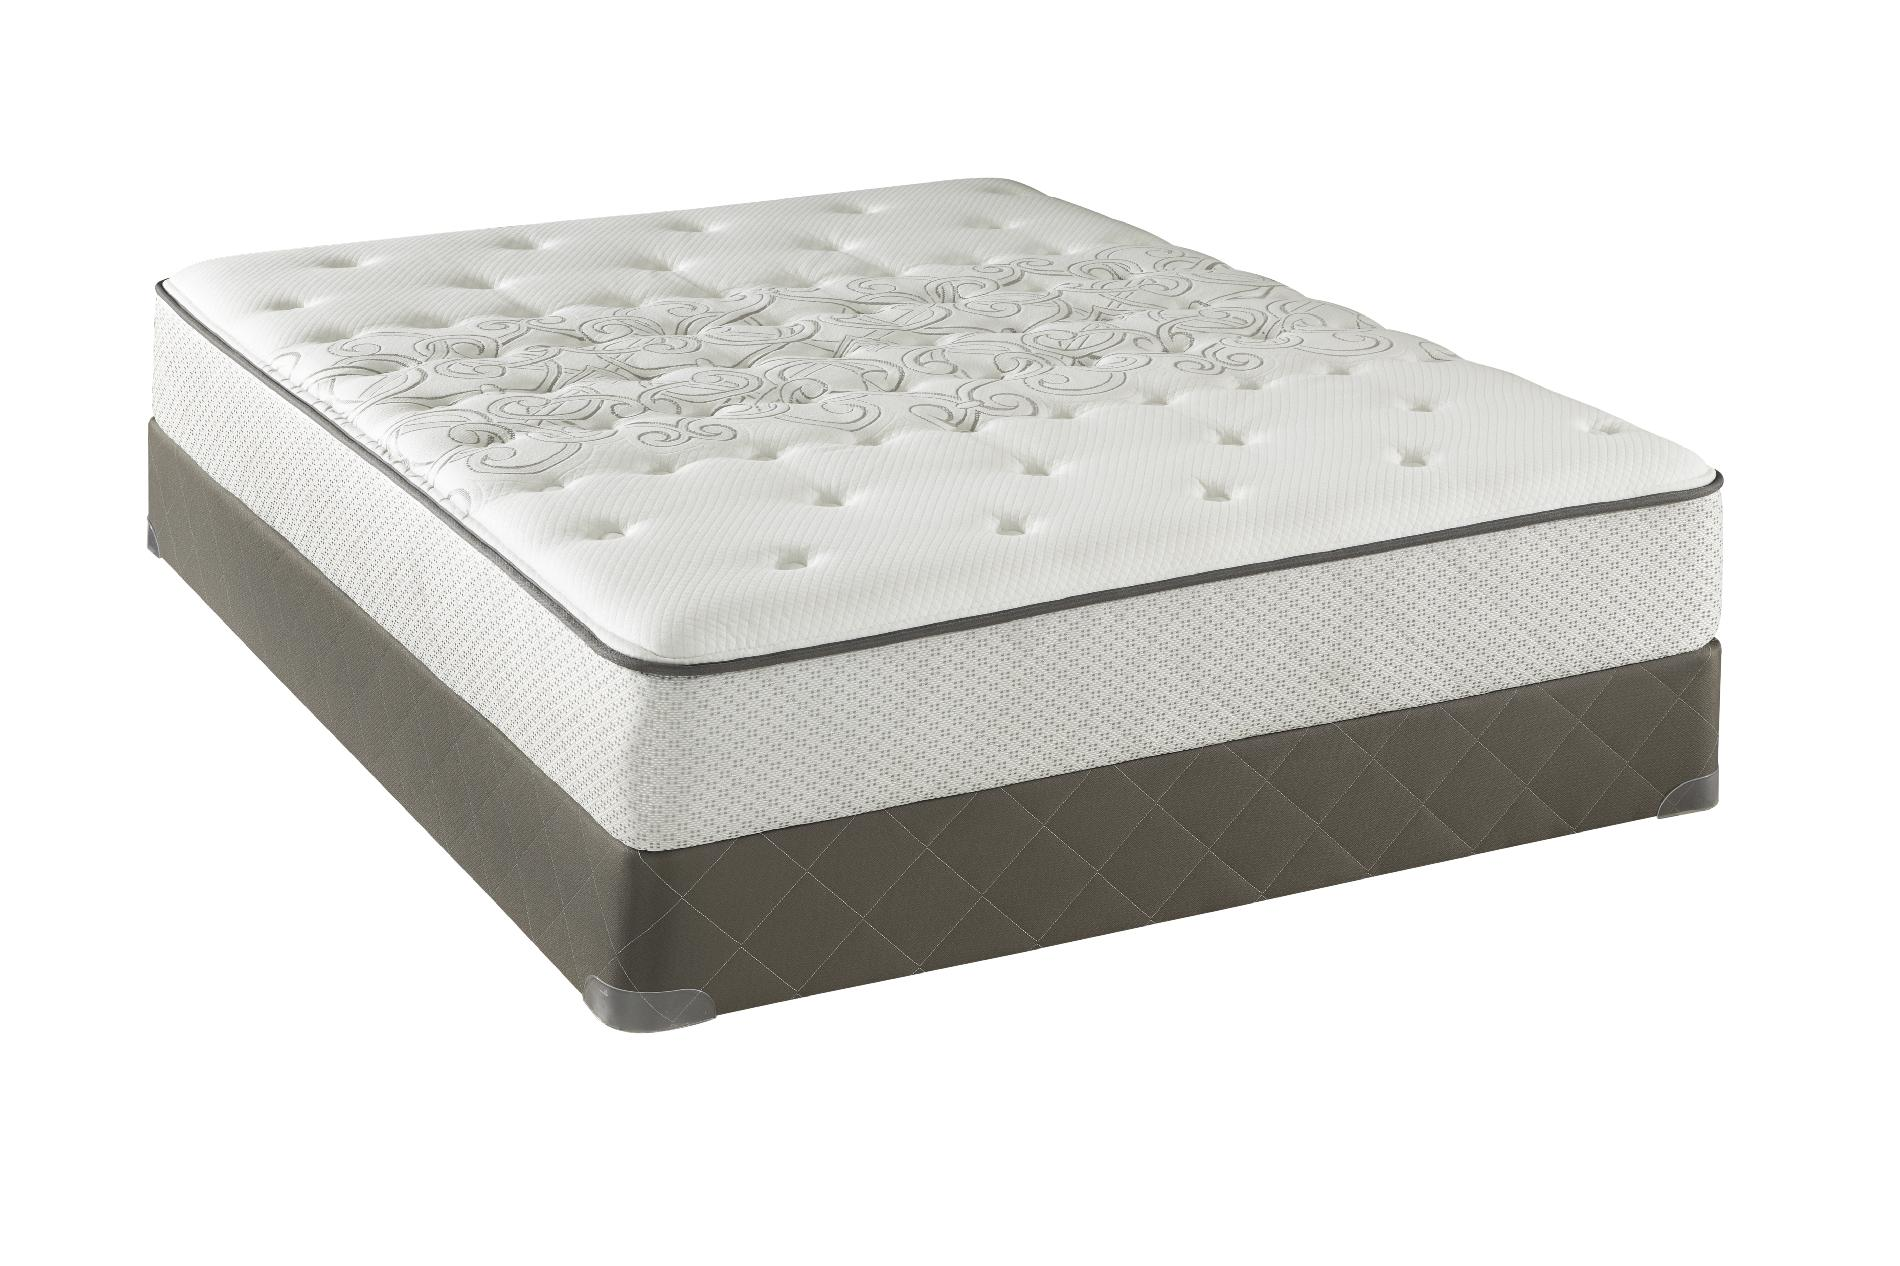 Sealy Posturepedic Alderwood Manor Ti, Cushion Firm, Queen Mattress Only